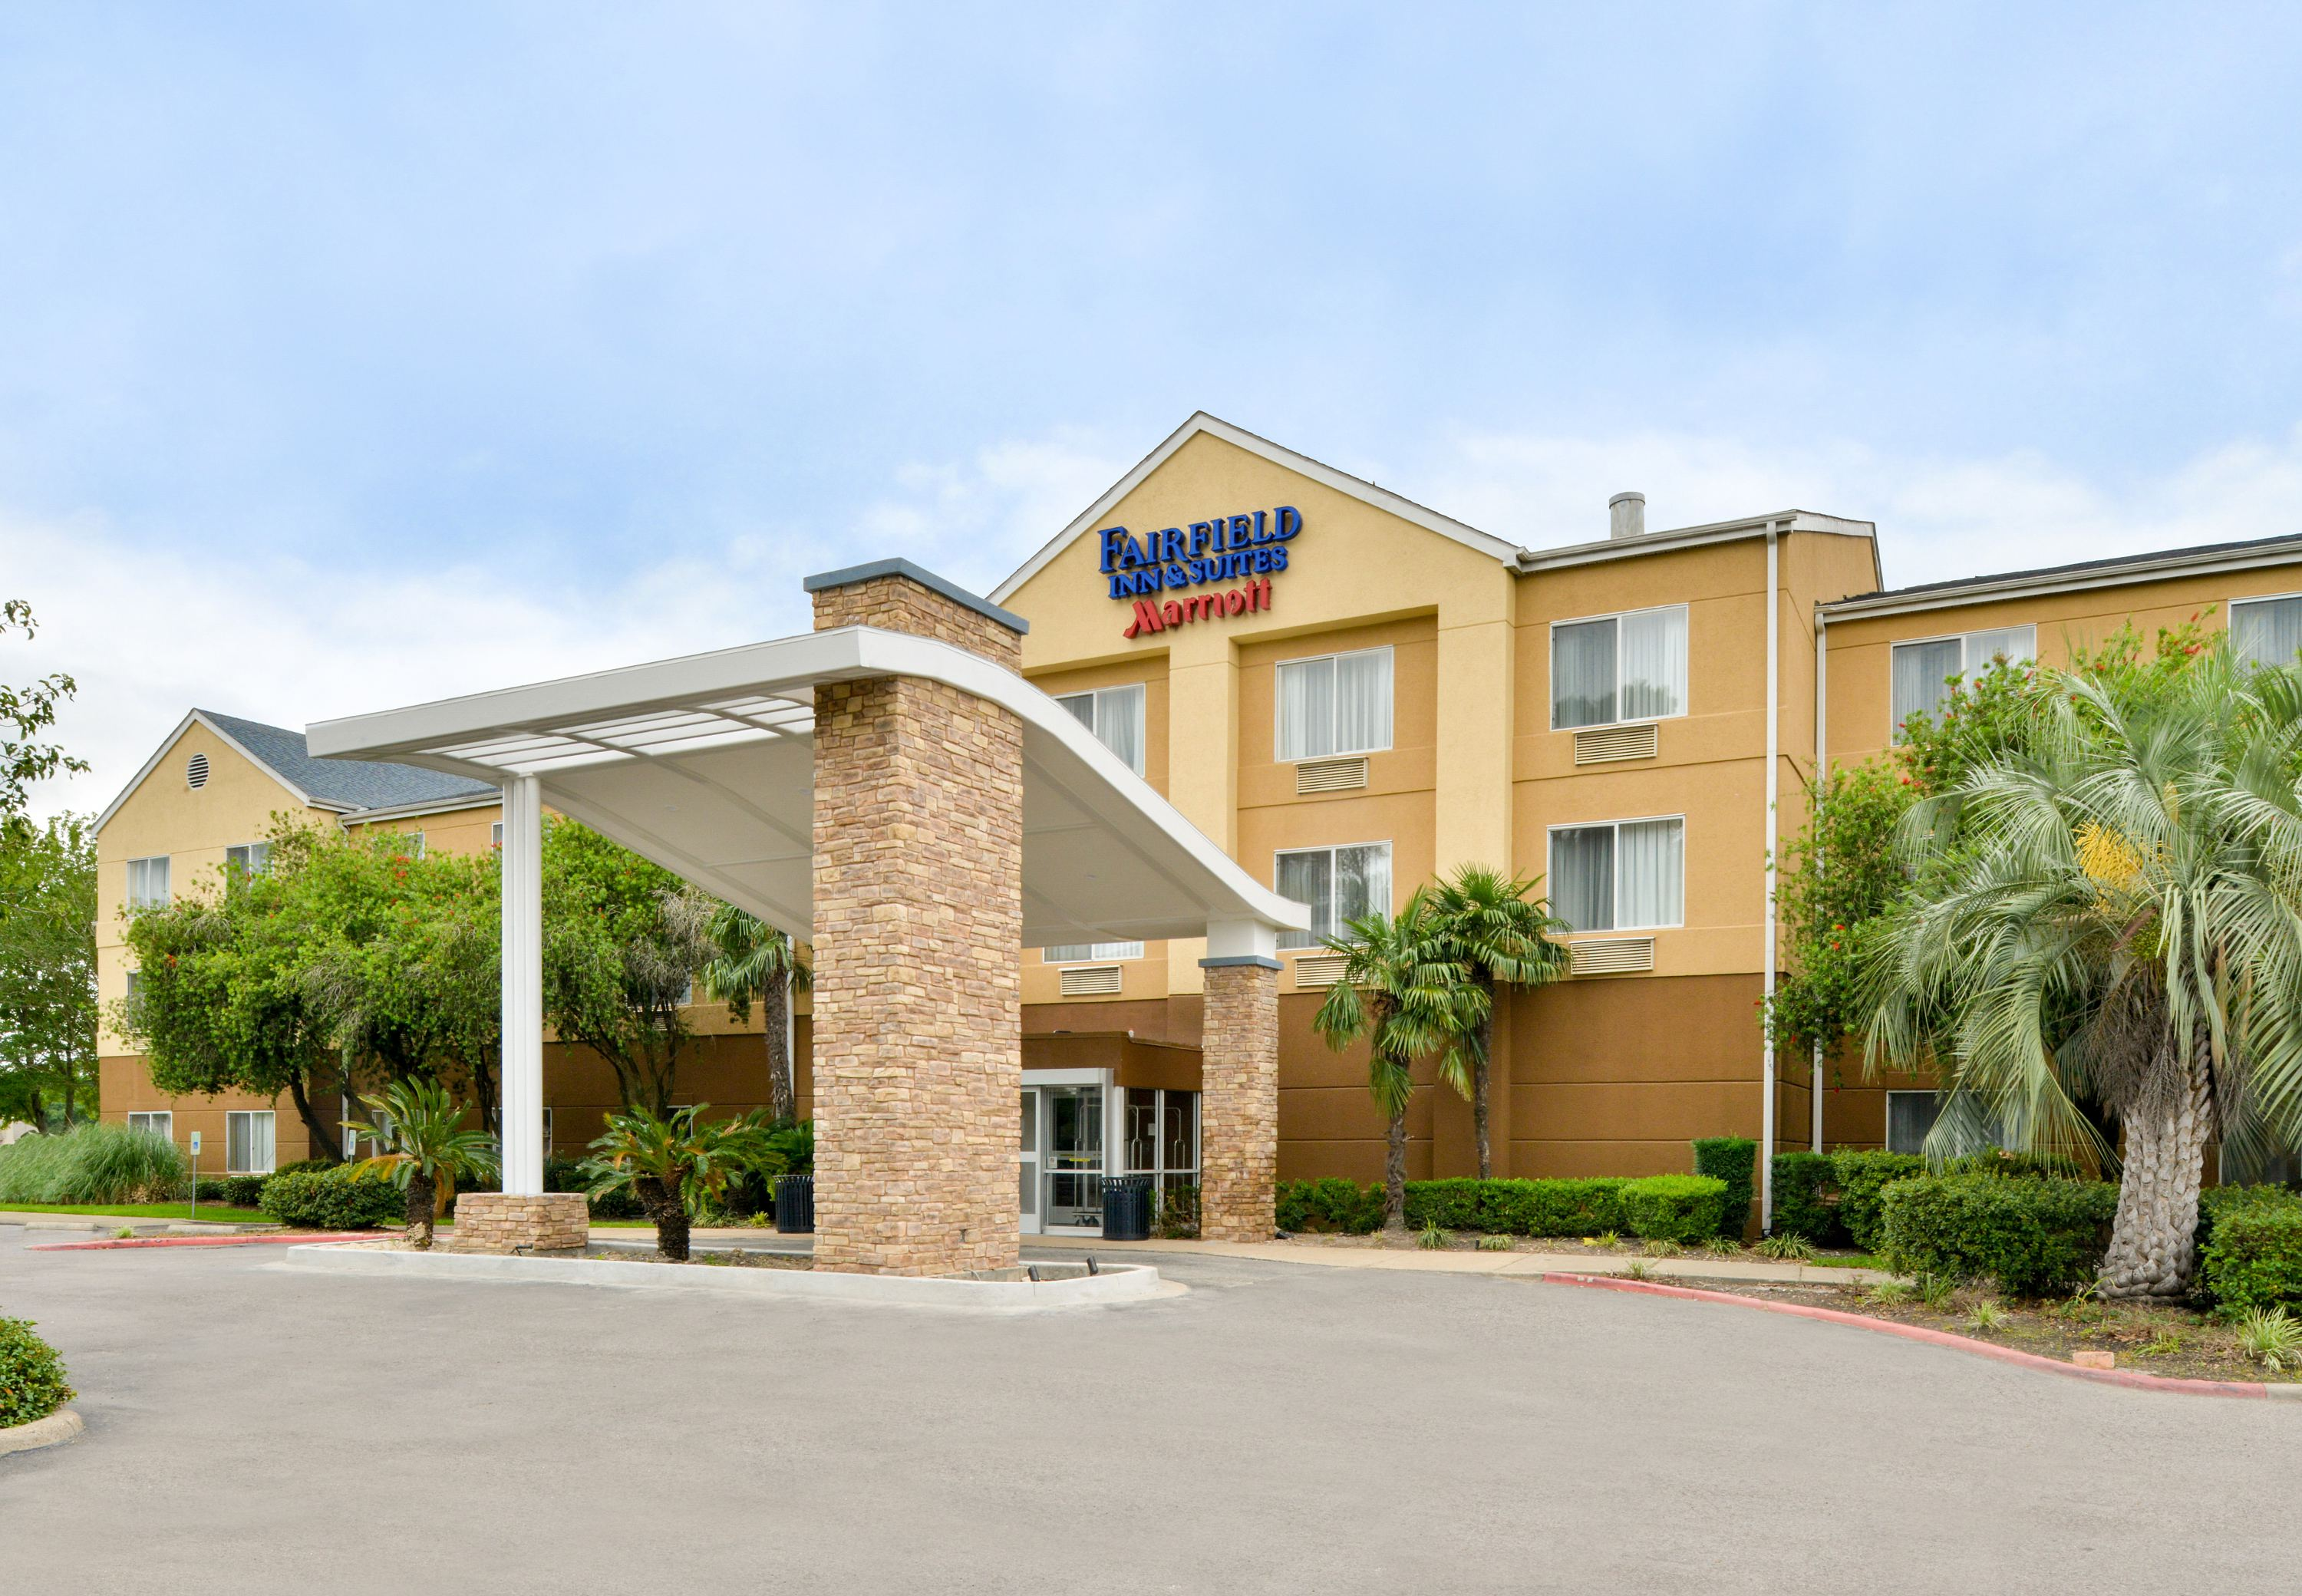 Fairfield inn suites by marriott beaumont beaumont The fairfield